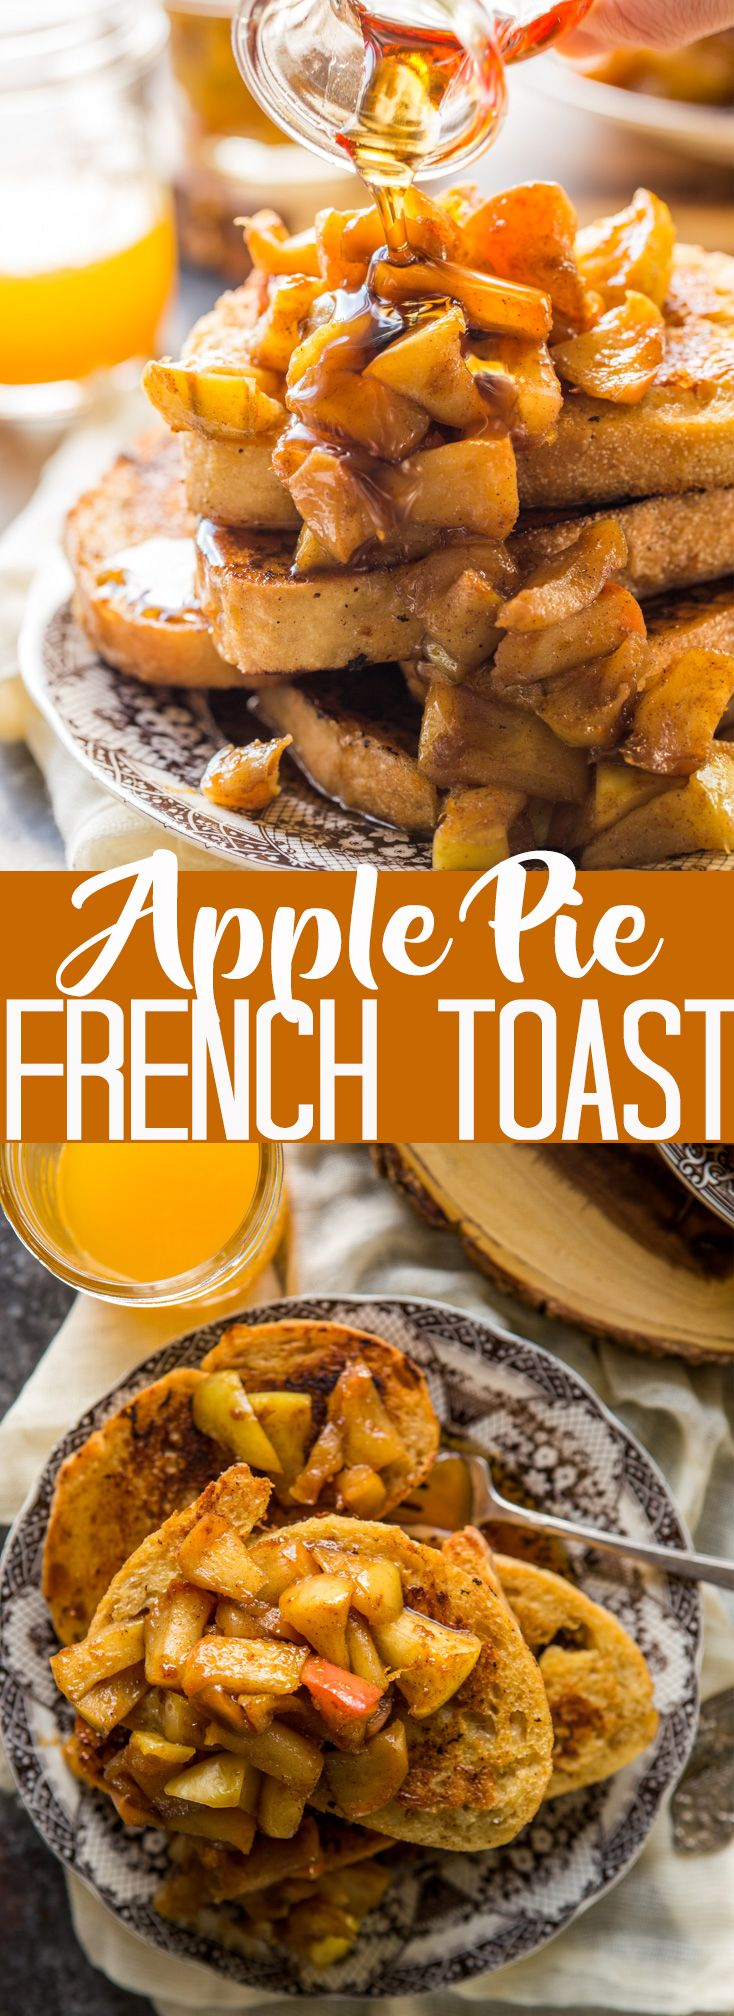 This Apple Pie French Toast is the best way to usher in fall! | Fall Breakfast | Apple Recipe| Best French Toast | Apple French Toast #ad #applerecipe #fallrecipe